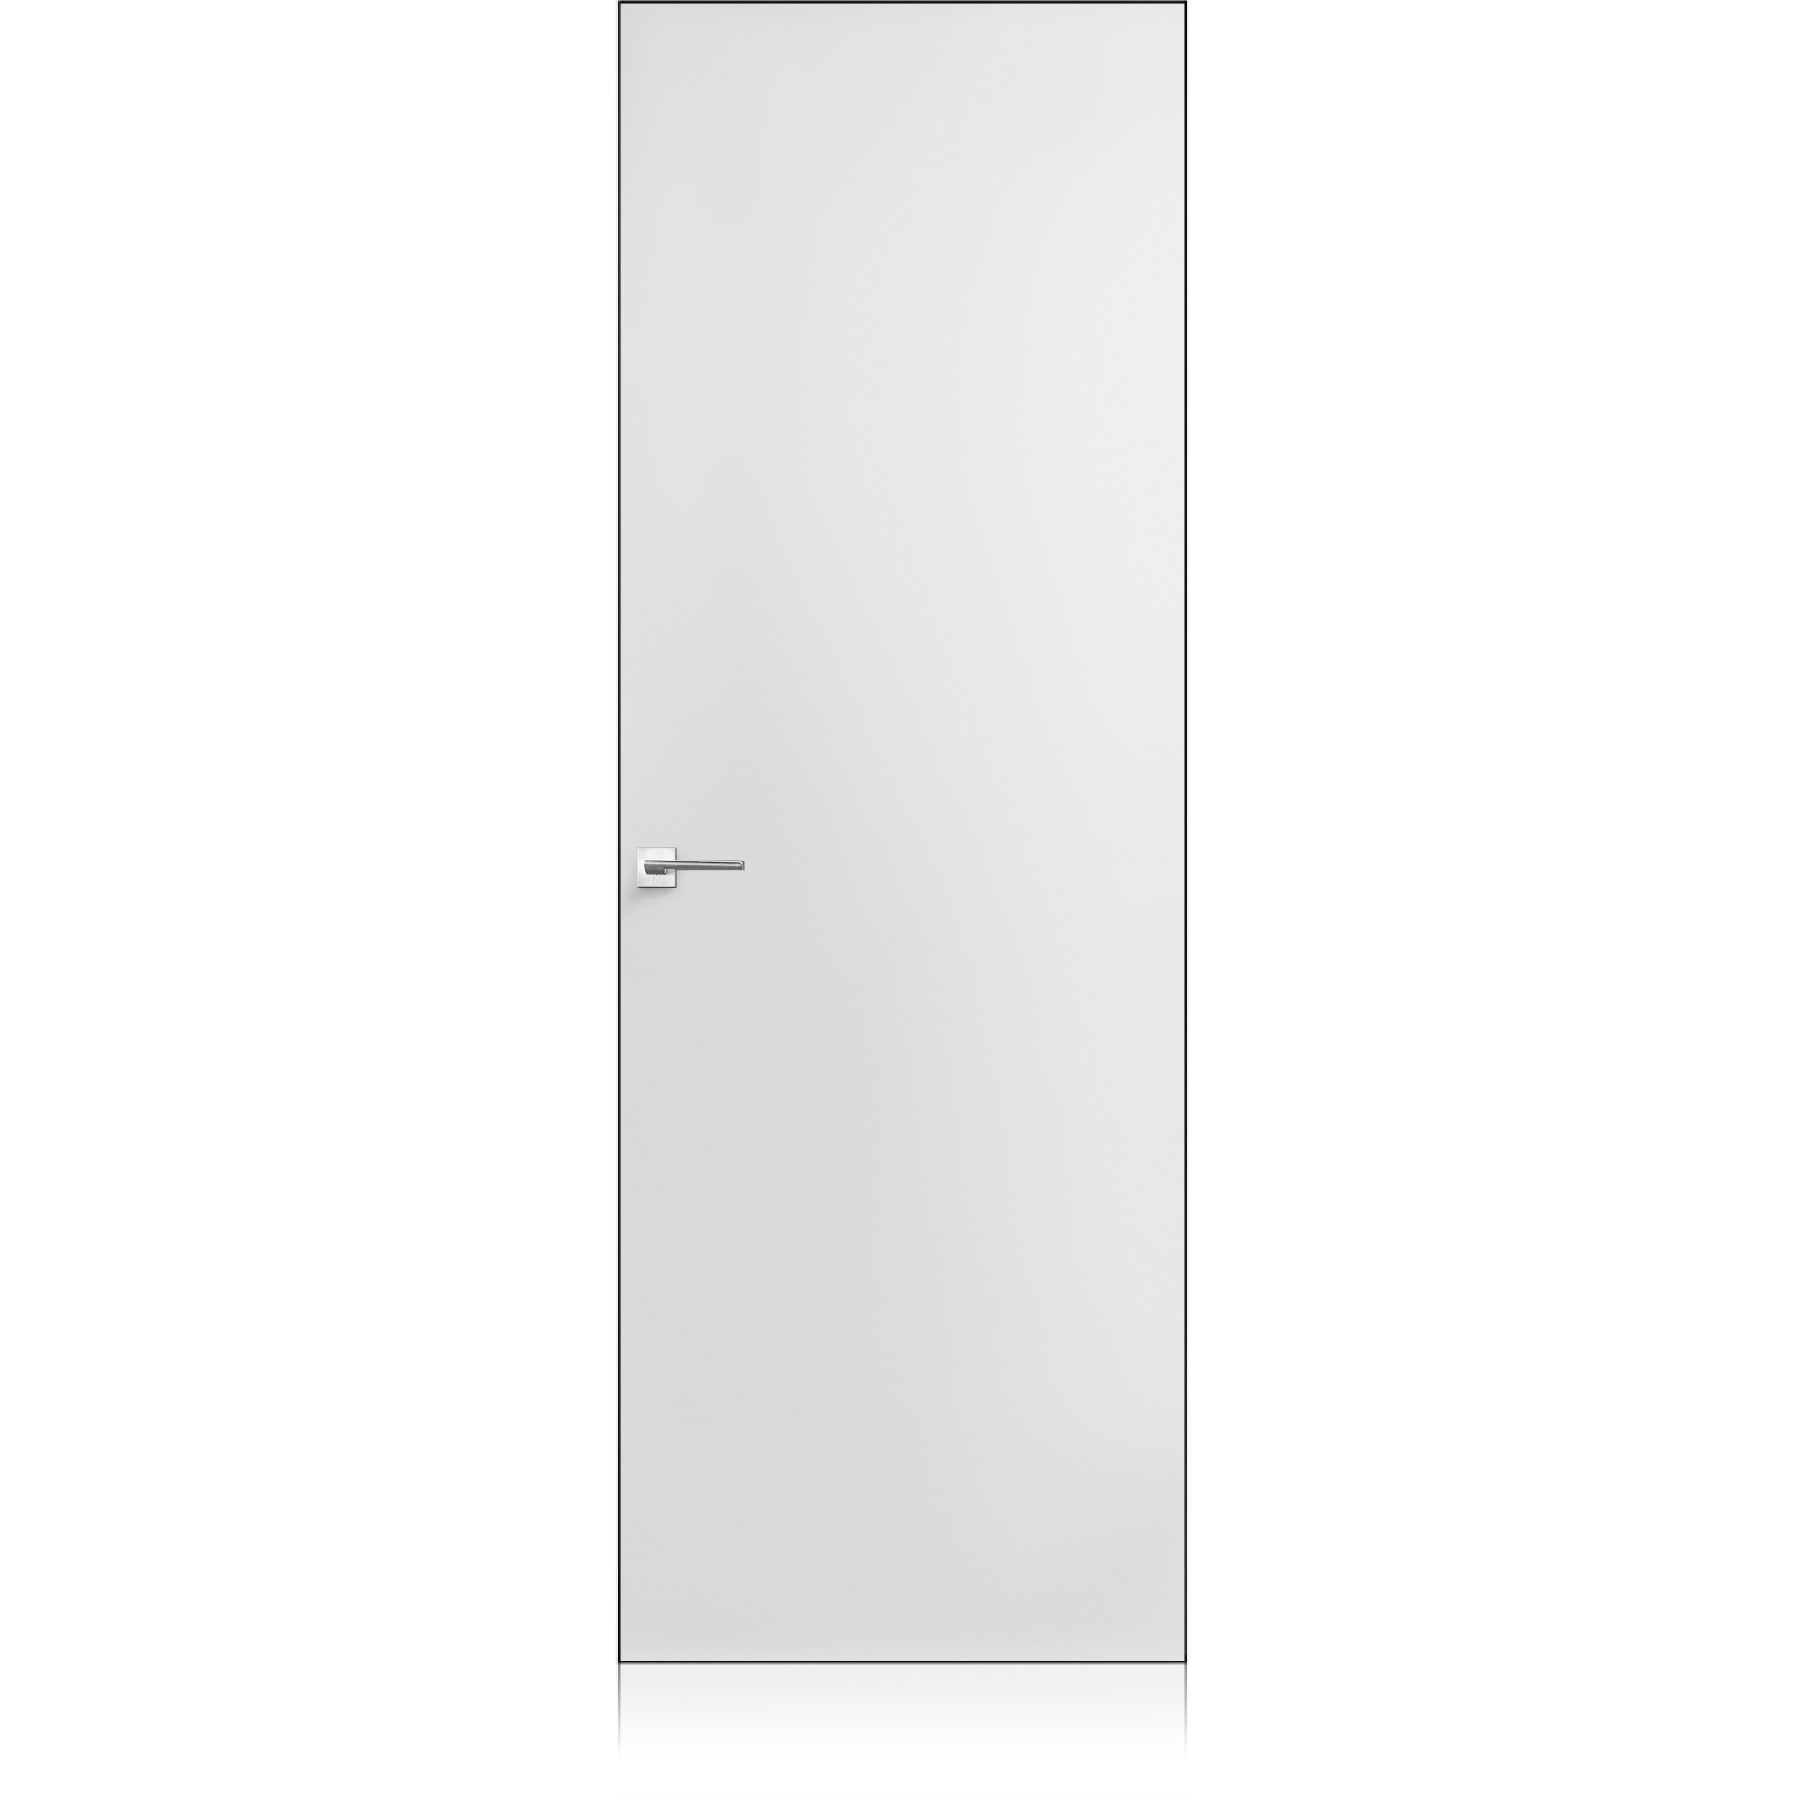 Exit Zero bianco optical lucido door